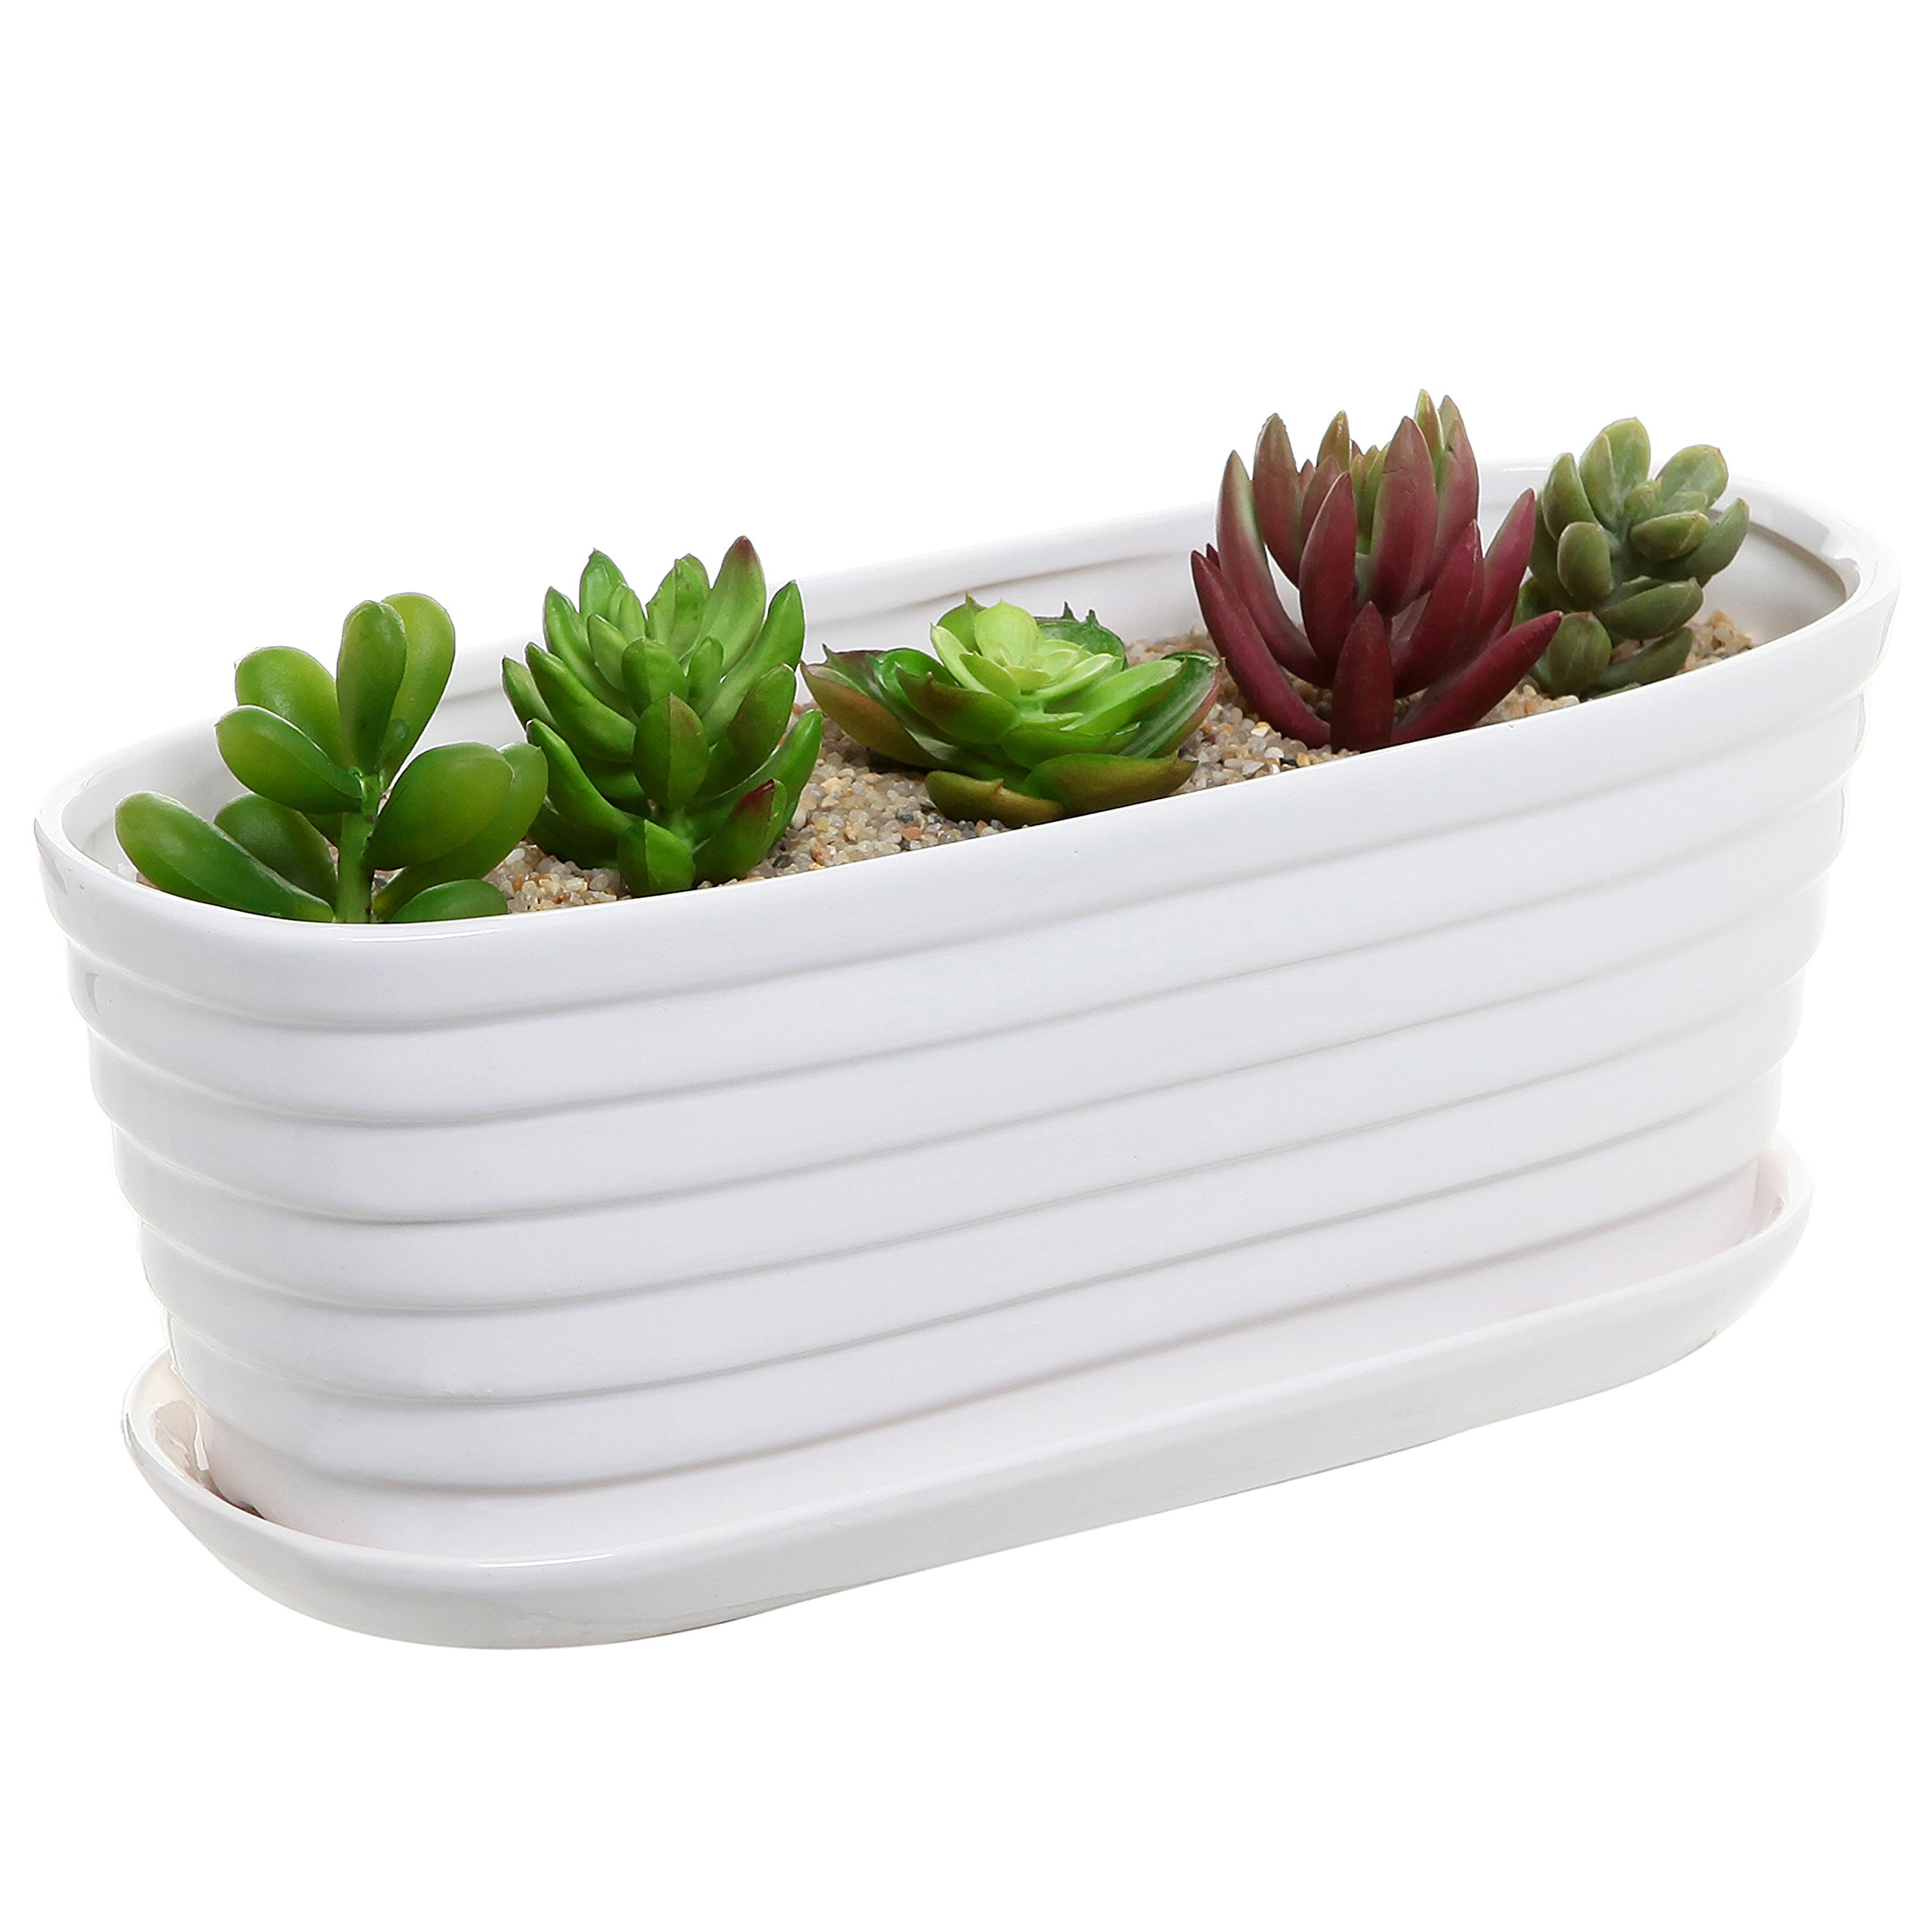 White Ceramic Ribbed Tub Design Succulent Planter Pot / Garden Plant Box w/ Attached Saucer - MyGift